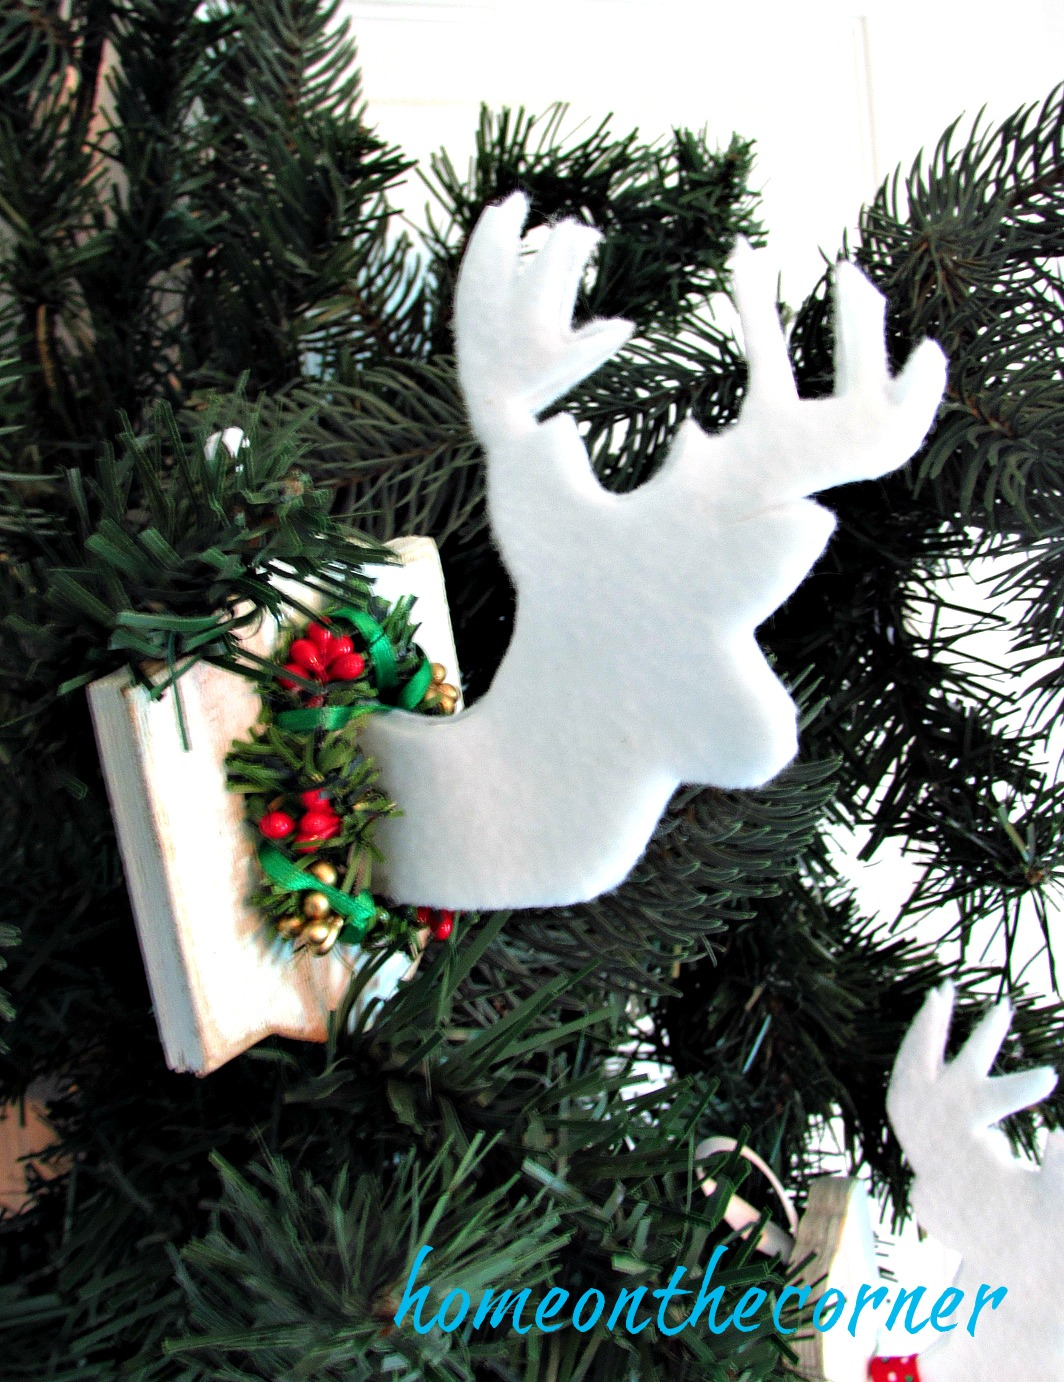 faux-deer-ornament-with-wreath